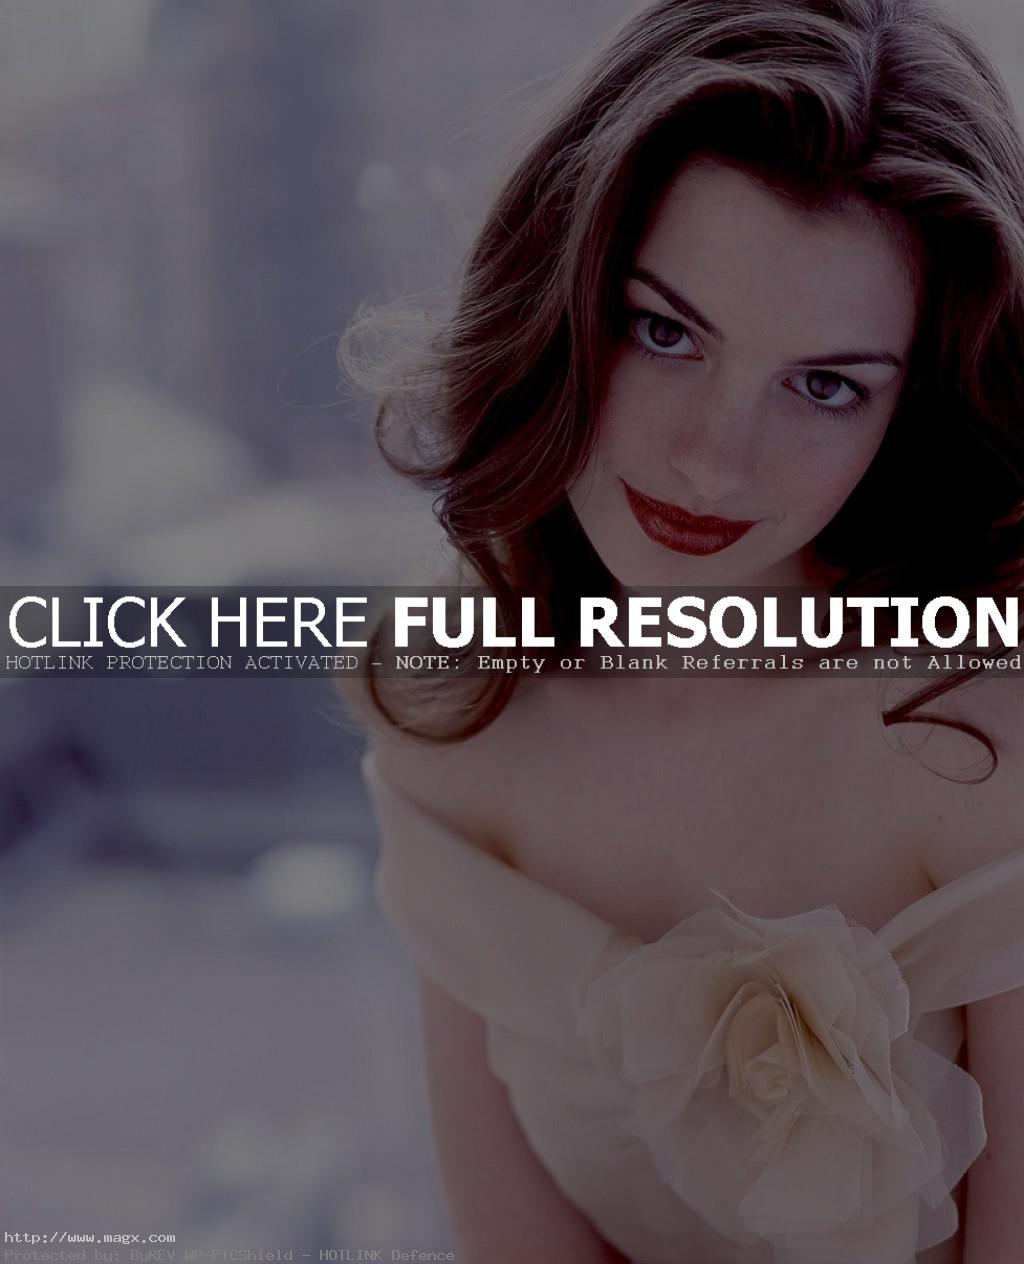 anne hathaway6 Anne Hathaway Biography and Hot Photos